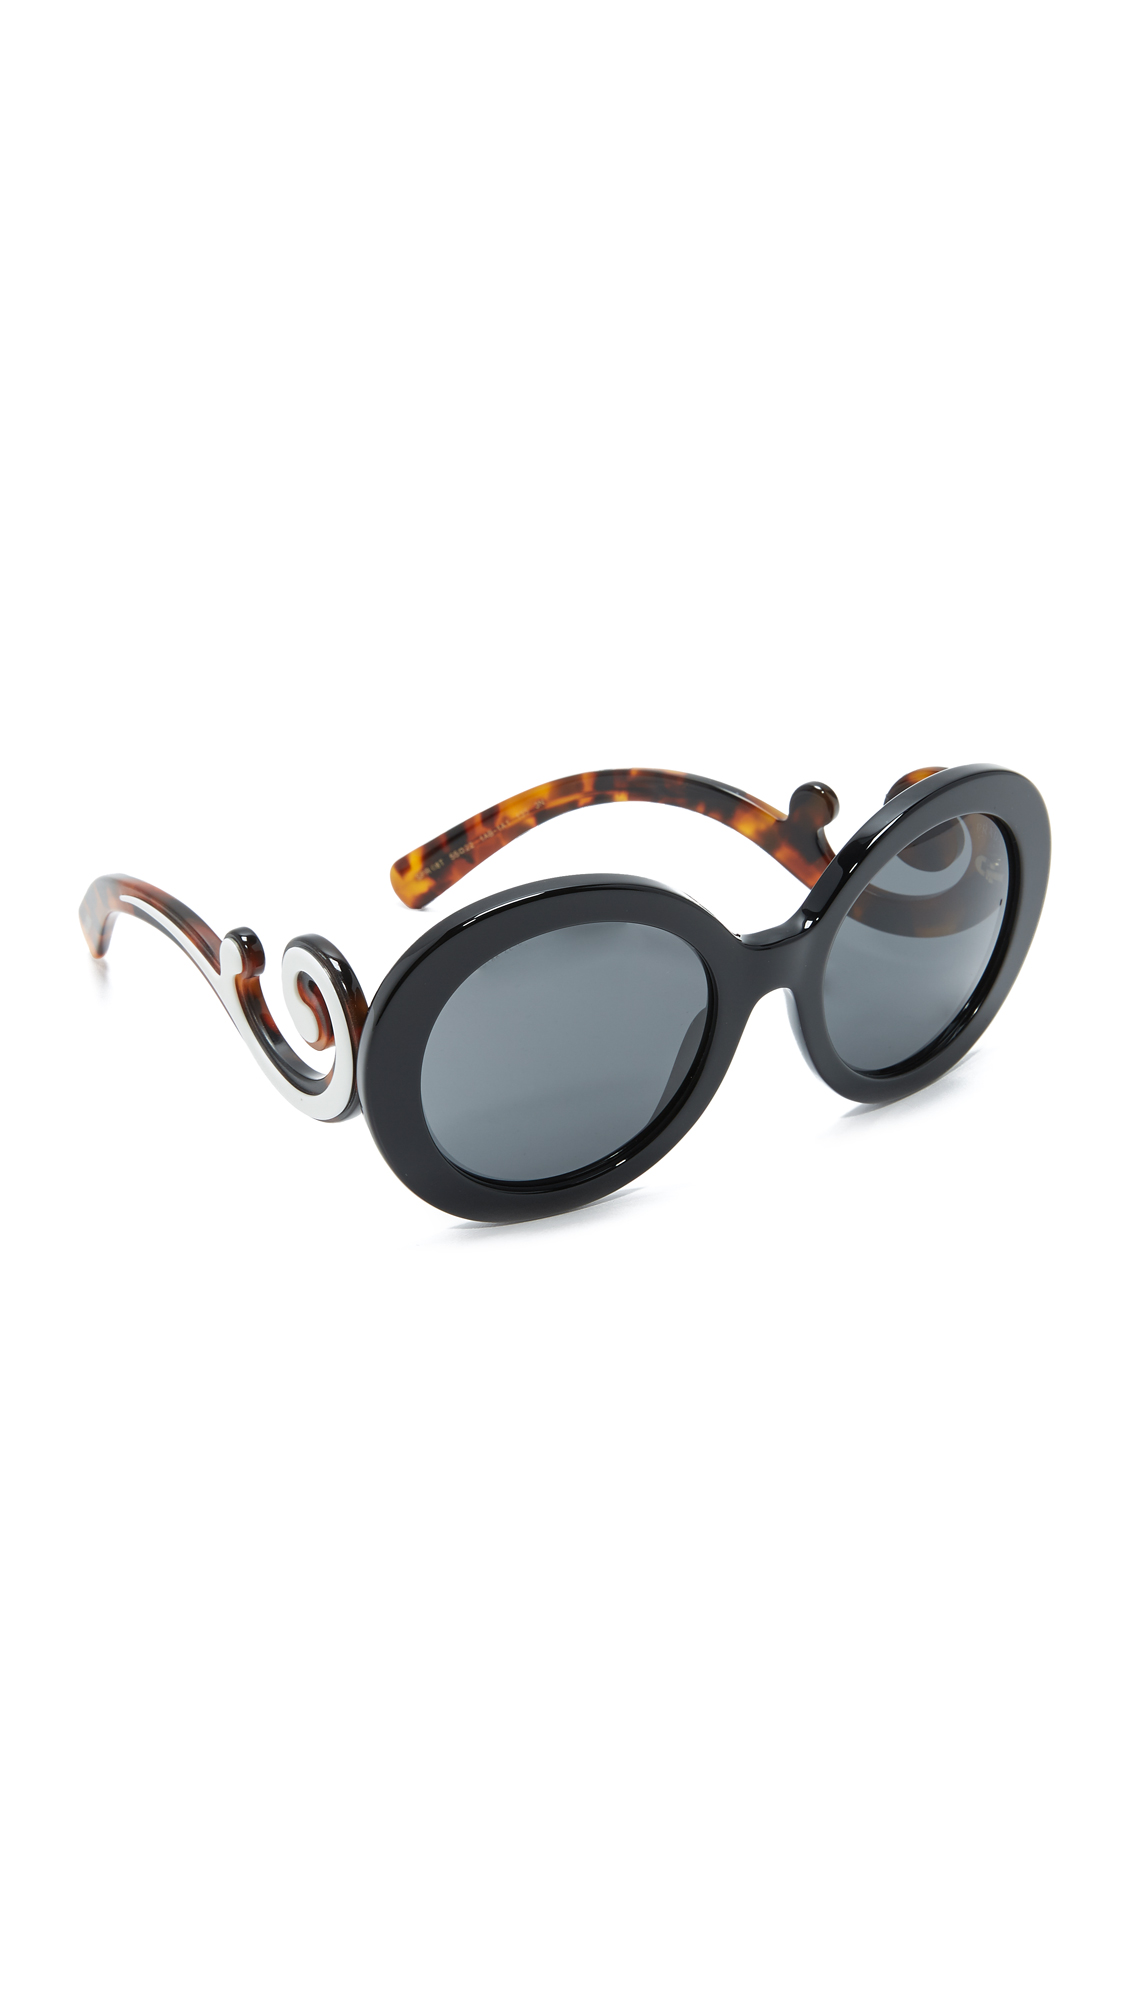 Prada Oversized Round Sunglasses - Black/Grey at Shopbop